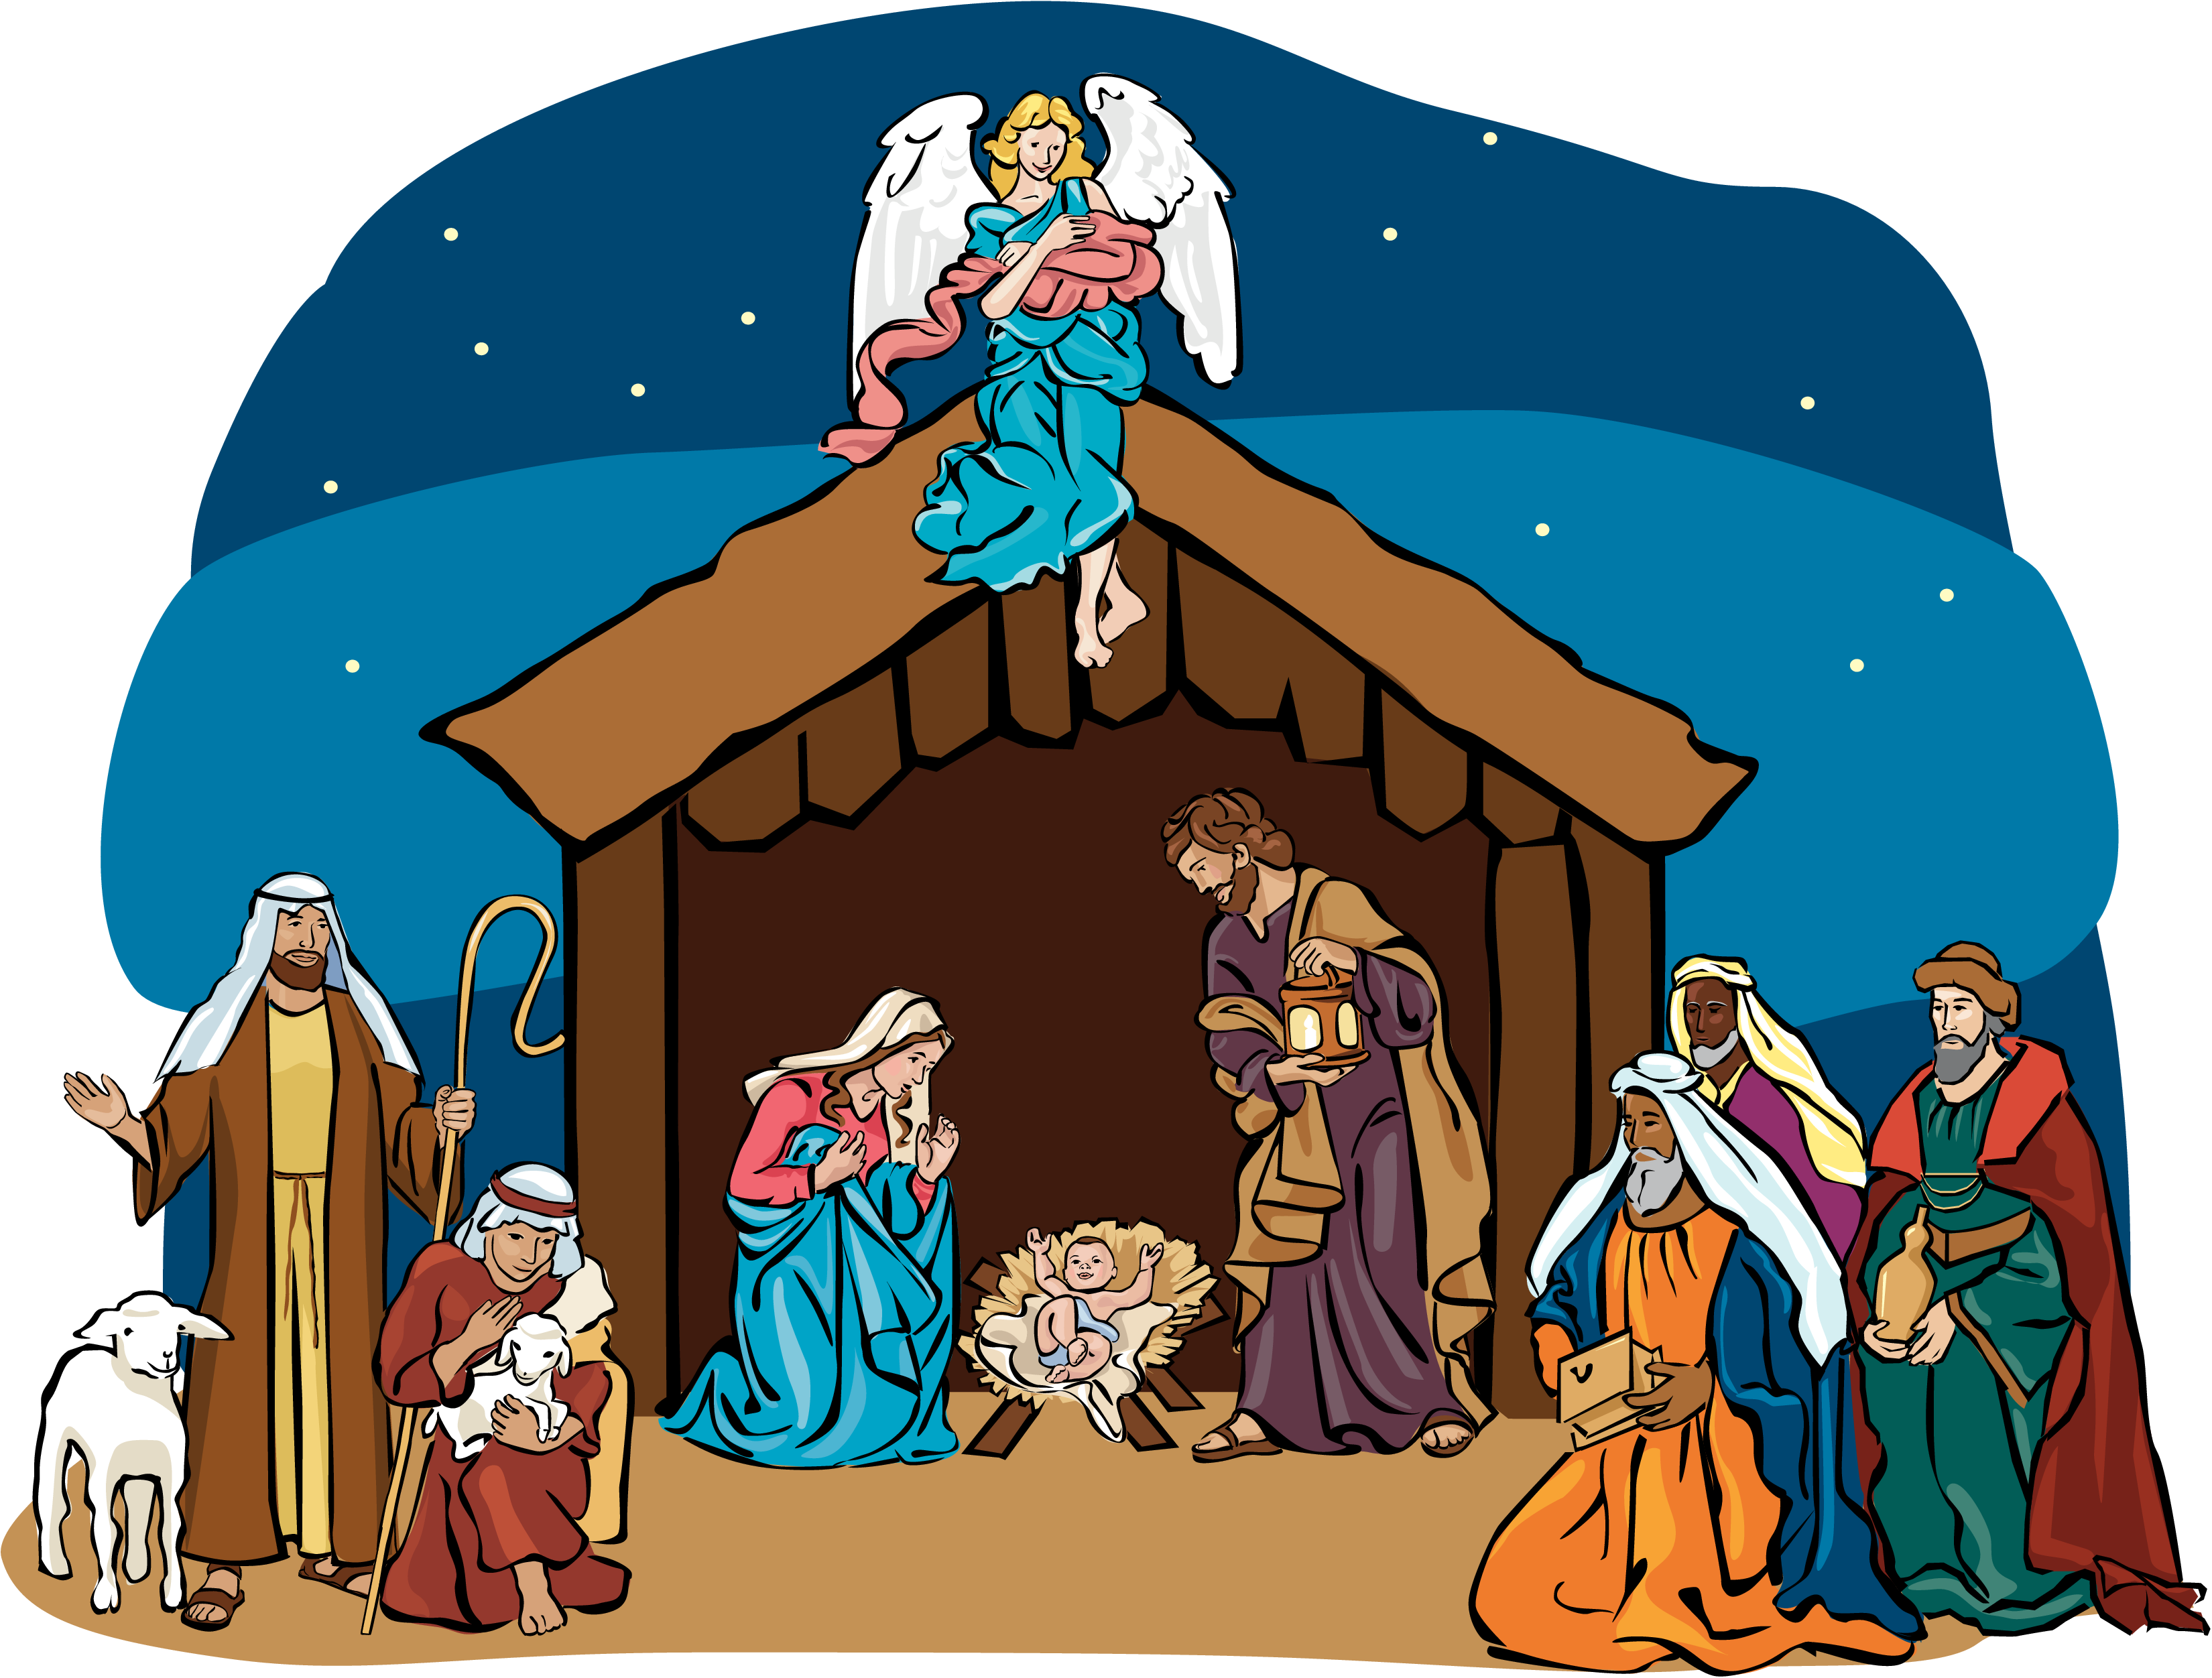 Free manger scene clipart clipart images gallery for free download.